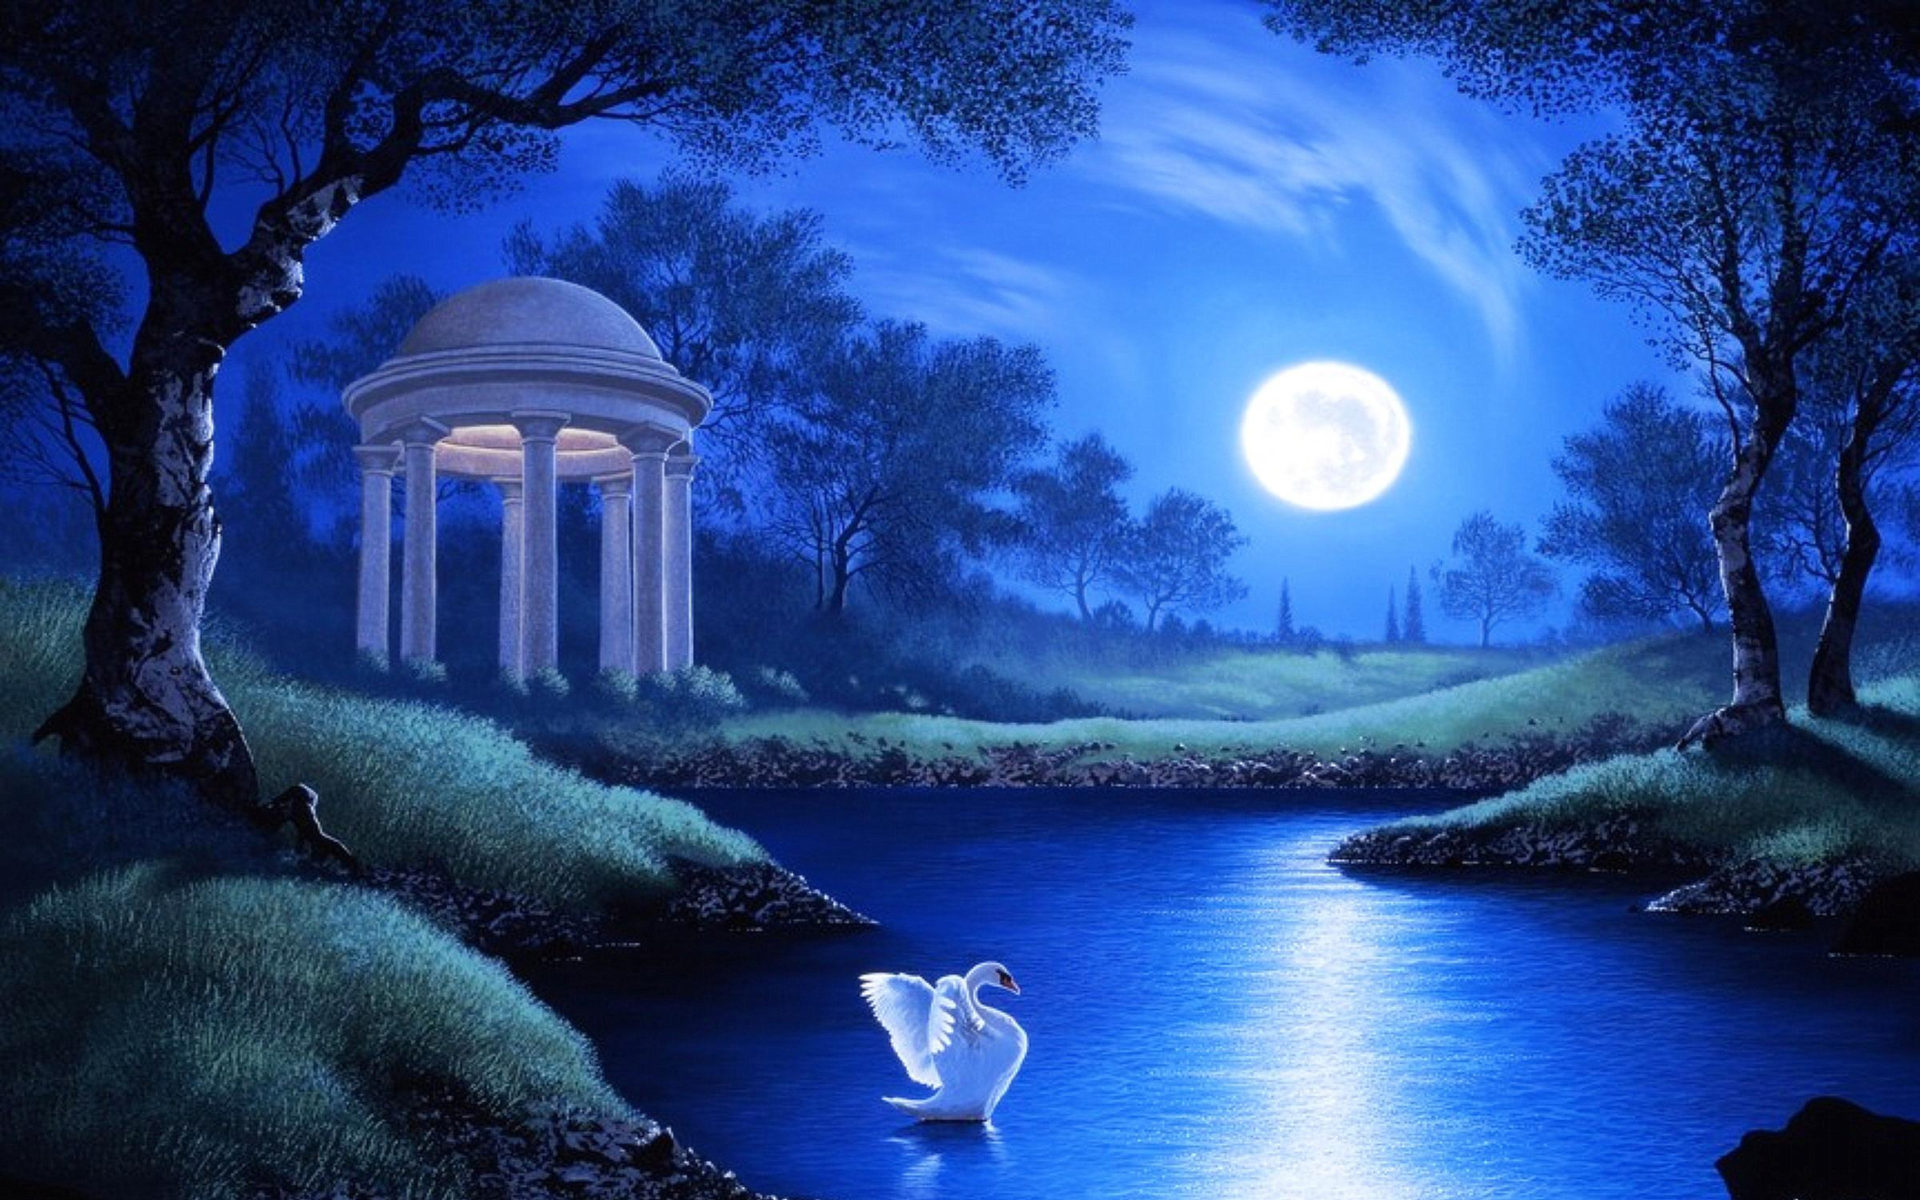 Live Pc Girl Wallpapers Swan Lake Night Full Moon Trees Grass Hd Wallpaper